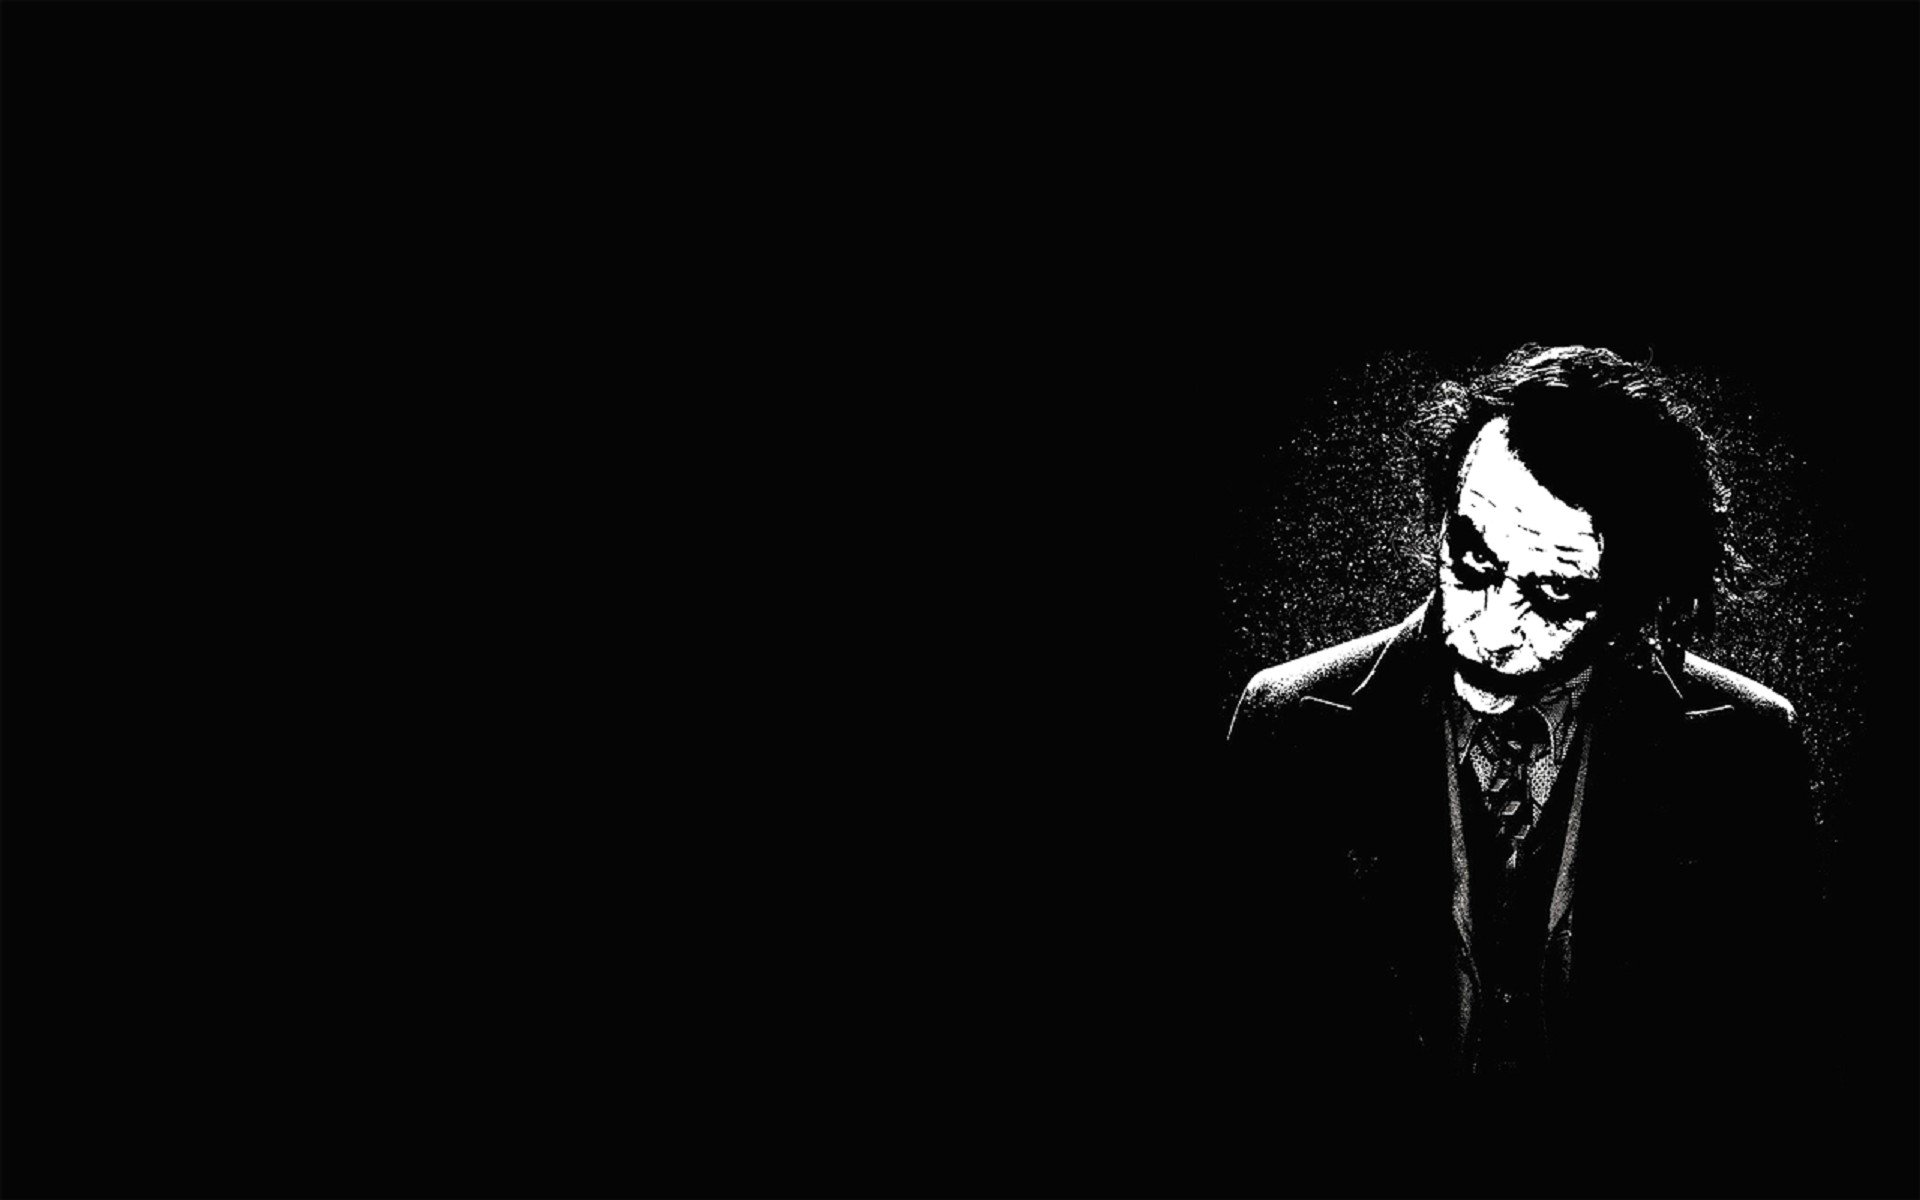 Black background monochrome joker hd wallpapers desktop and mobile images photos